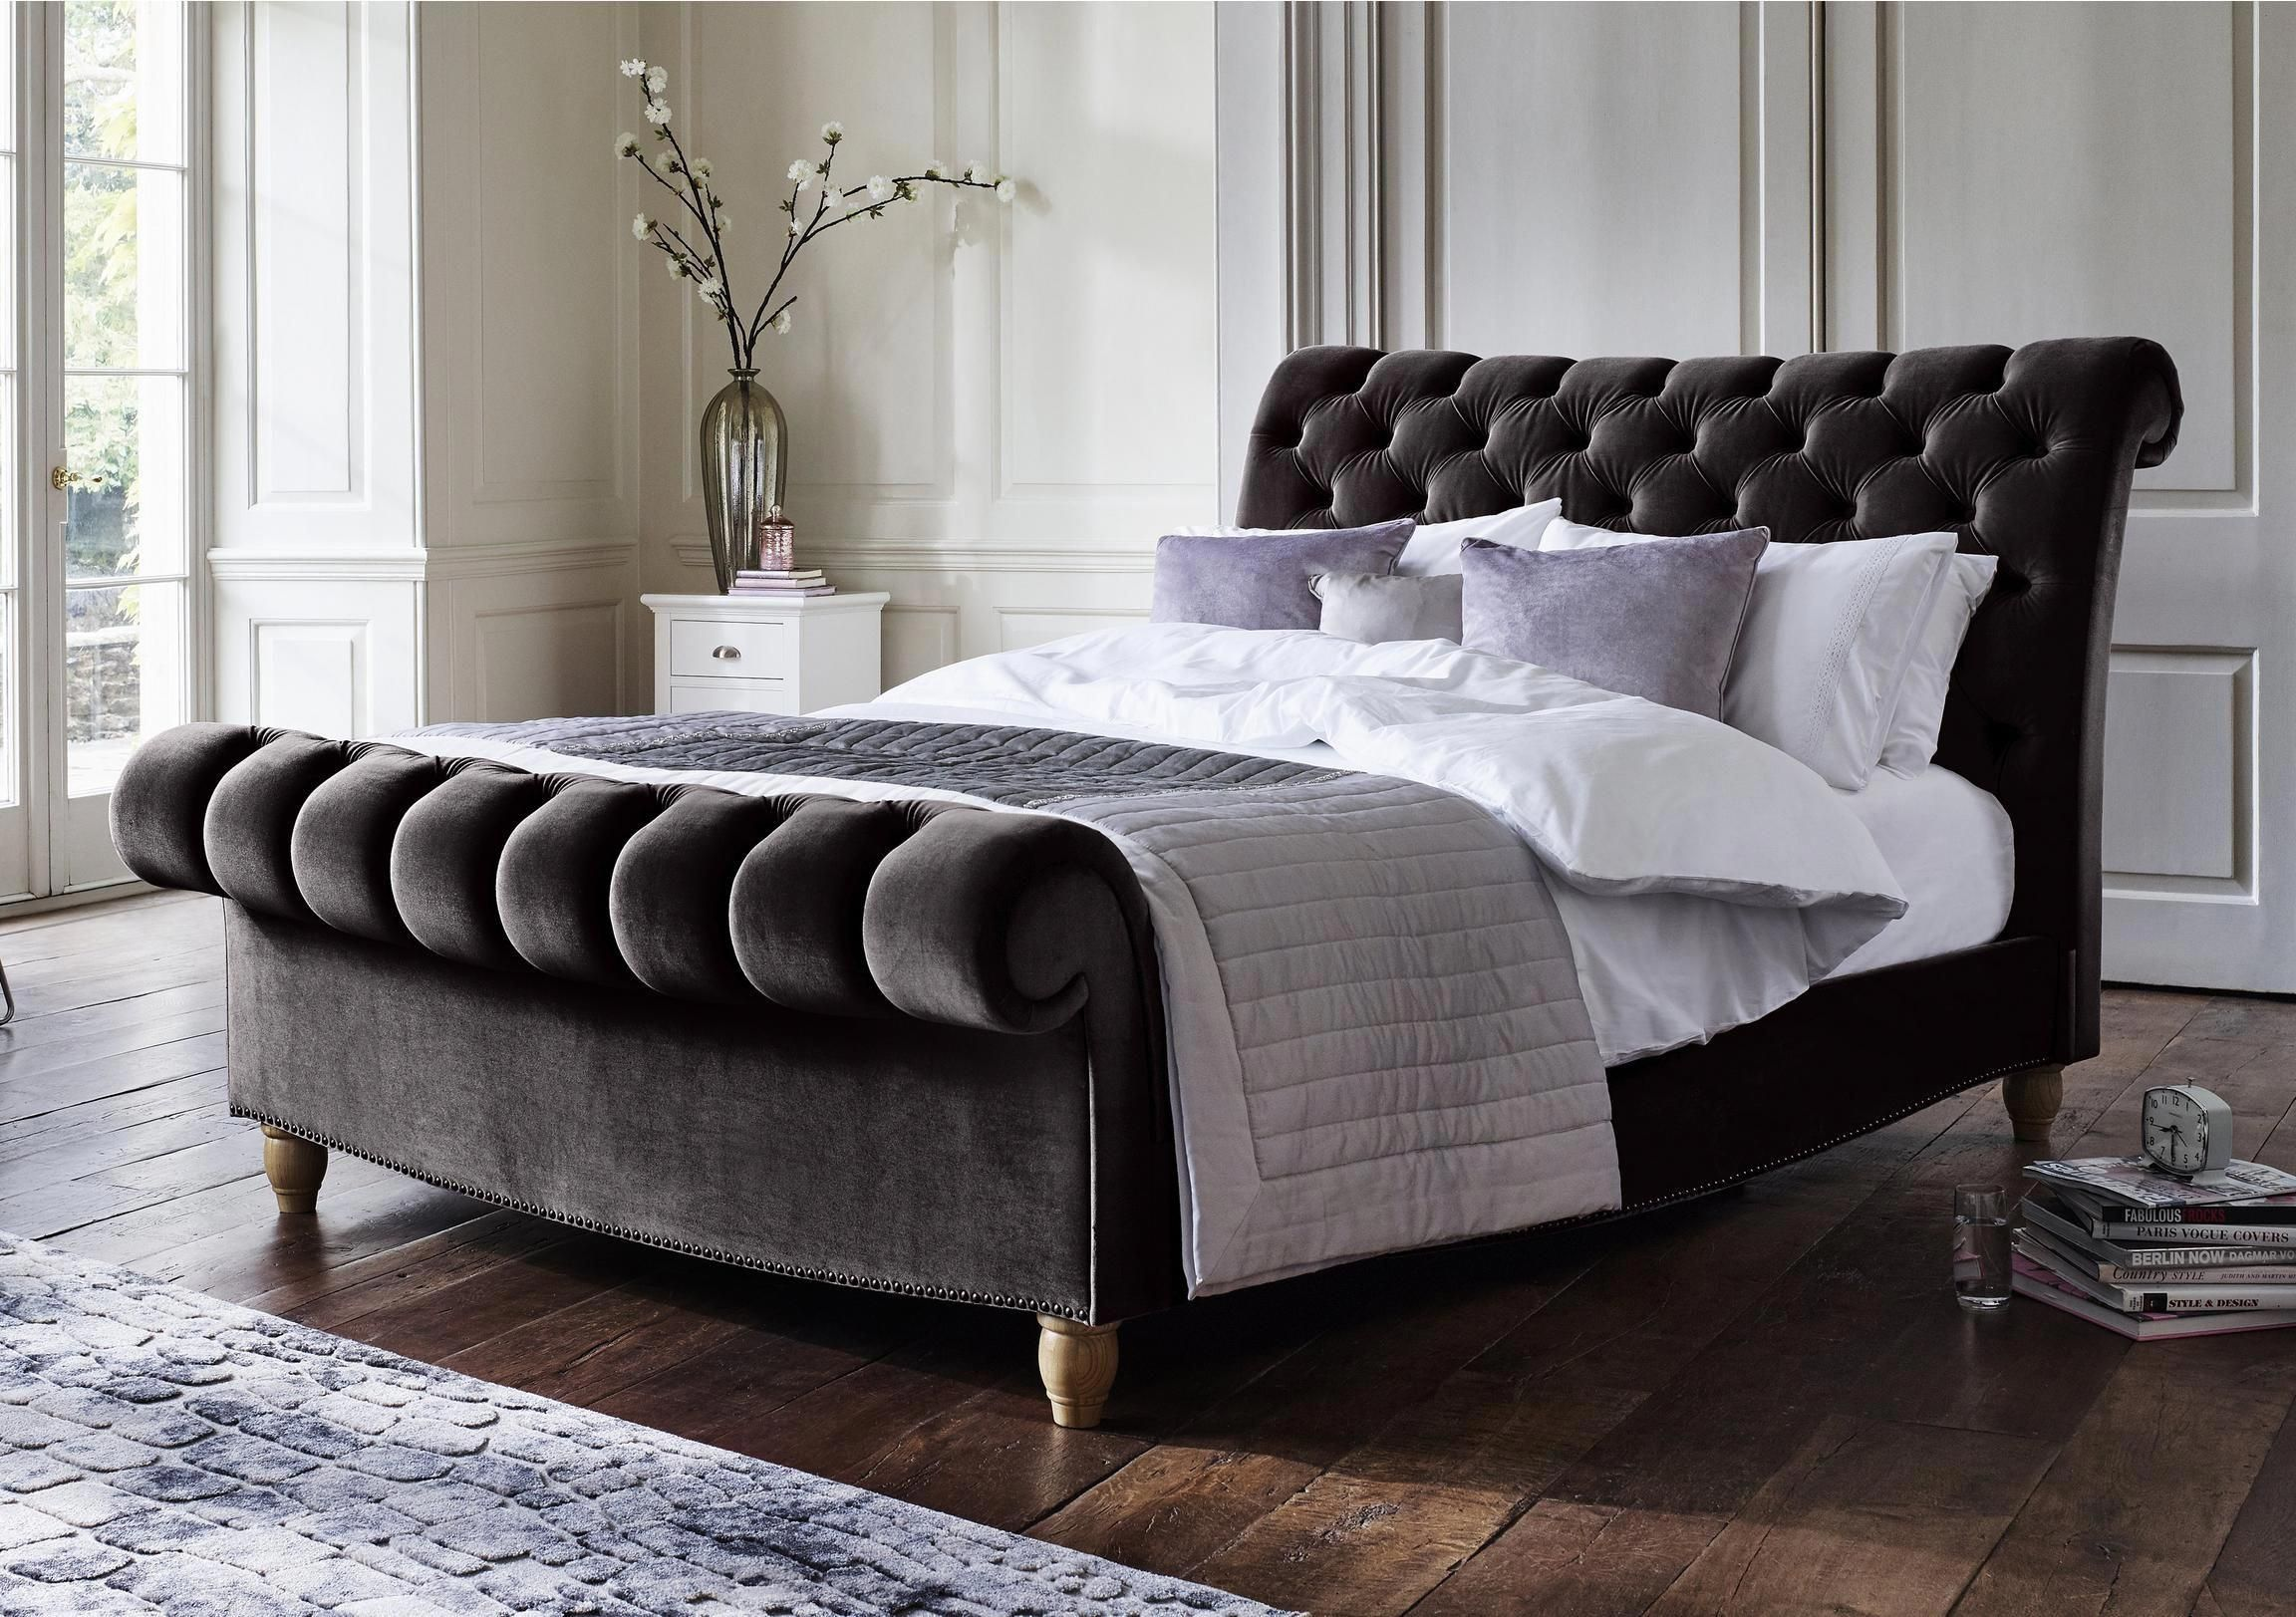 Opulent Handcrafted Bed Frame With Scrolling Headboard And